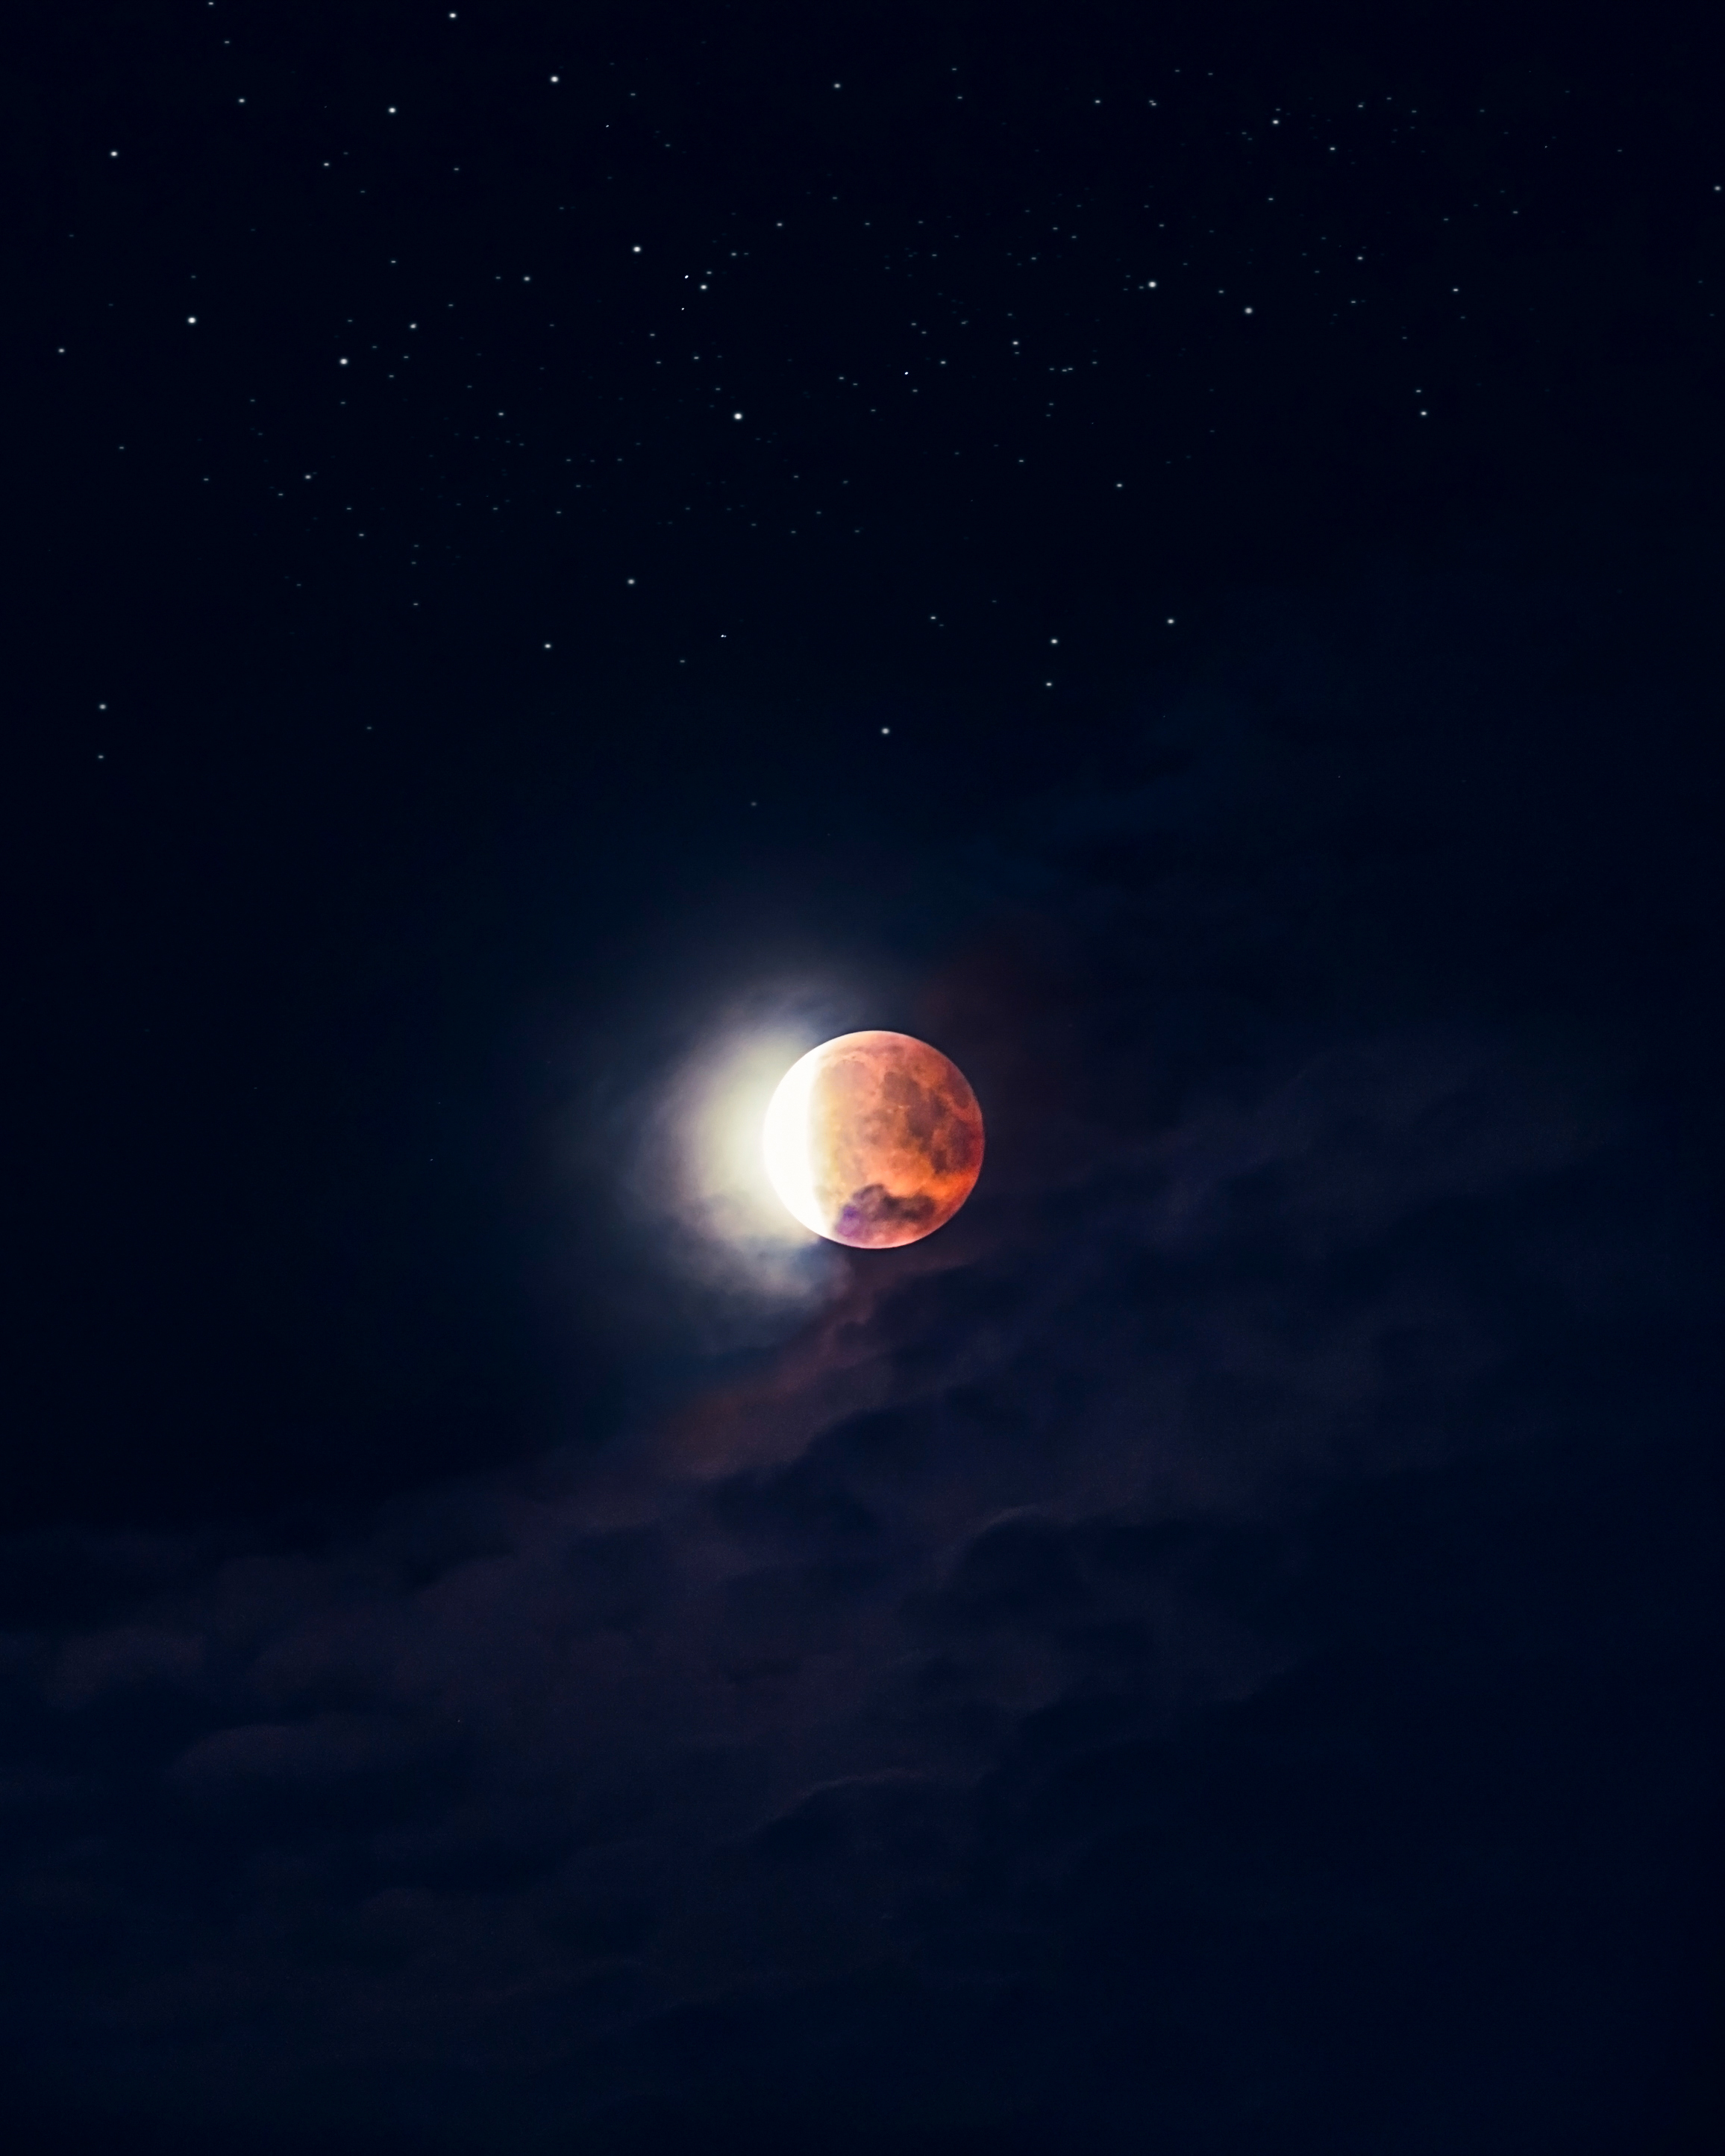 Android Wallpapers   Find your next android wallpaper on Unsplash     lunar eclipse digital wallpaper